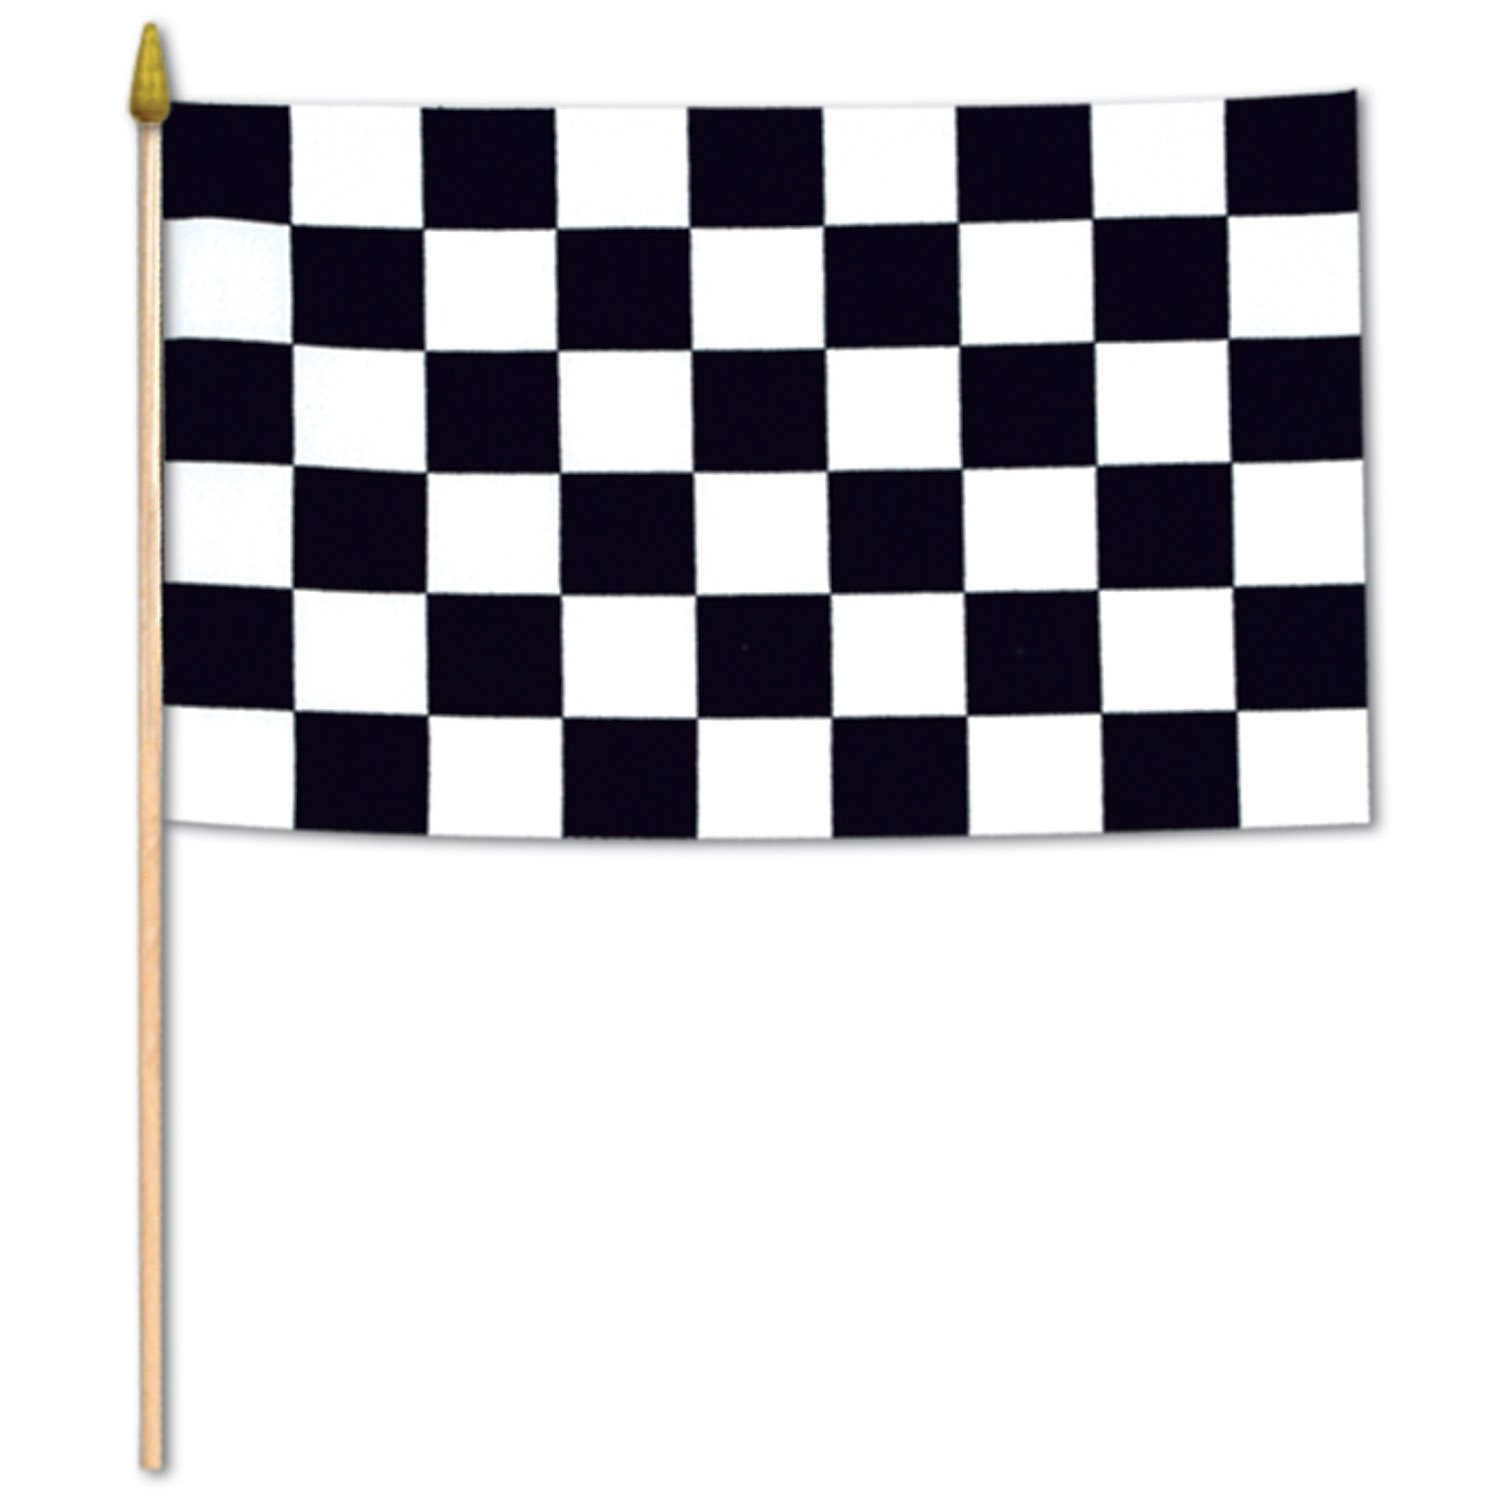 Beistle 50992 12-Pack Checkered Rayon Flags, 11 by 18-Inch by Beistle